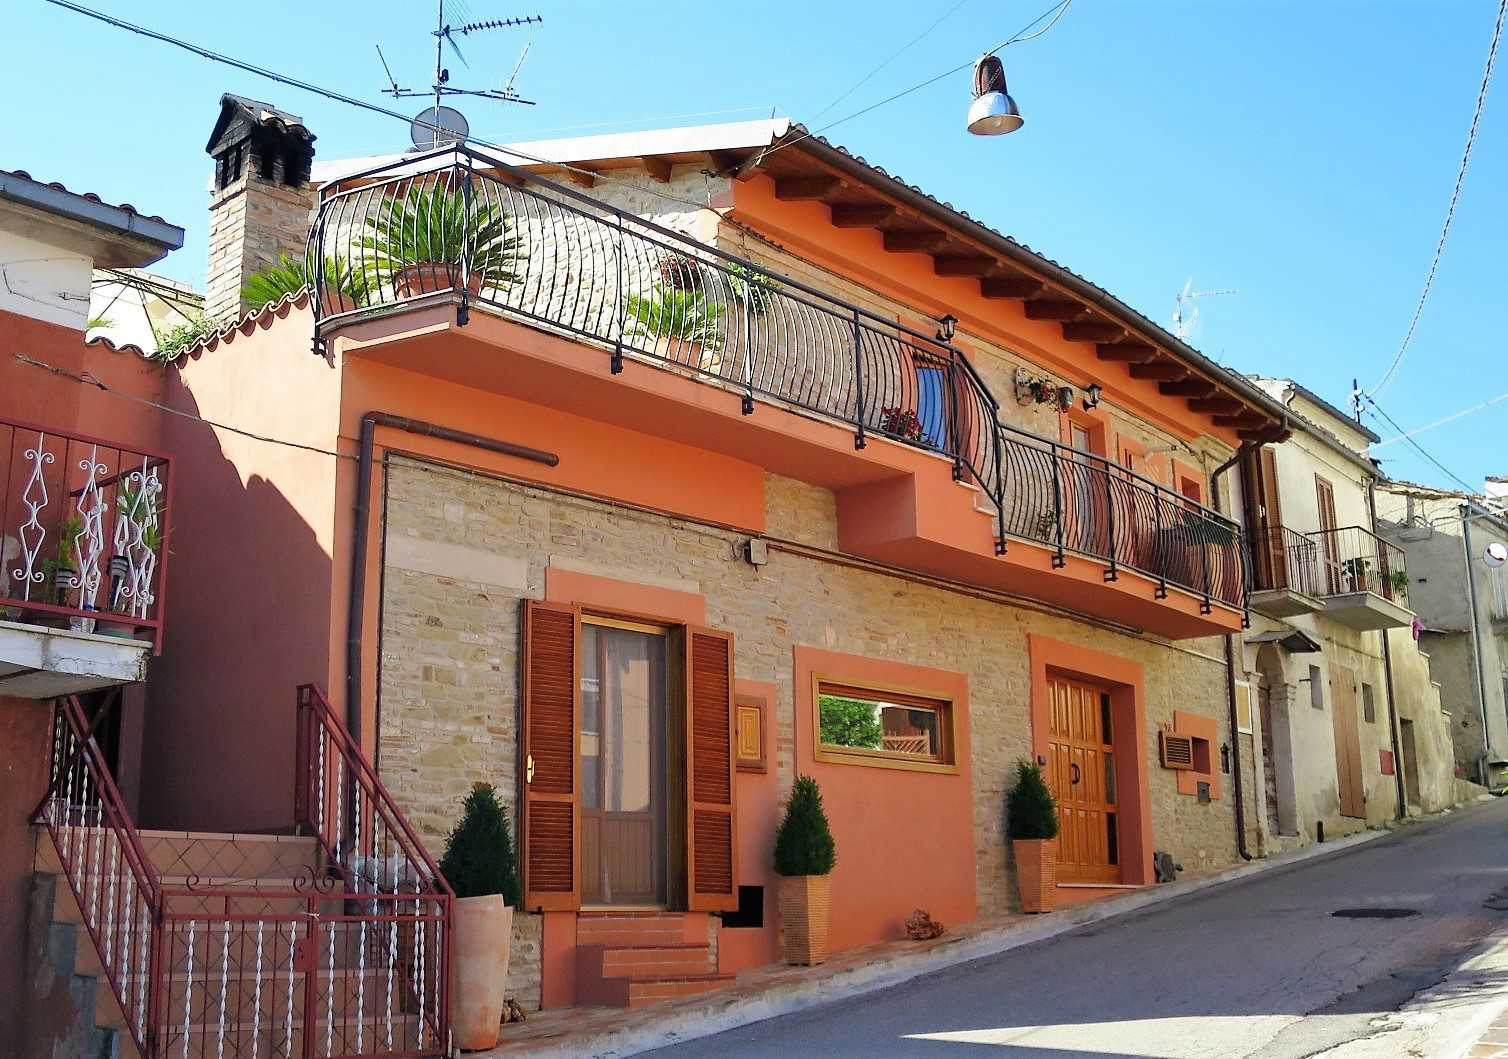 Semi-detached House Semi-detached House for sale Cermignano (TE), Casa Gualtieri - Cermignano - EUR 201.814 90